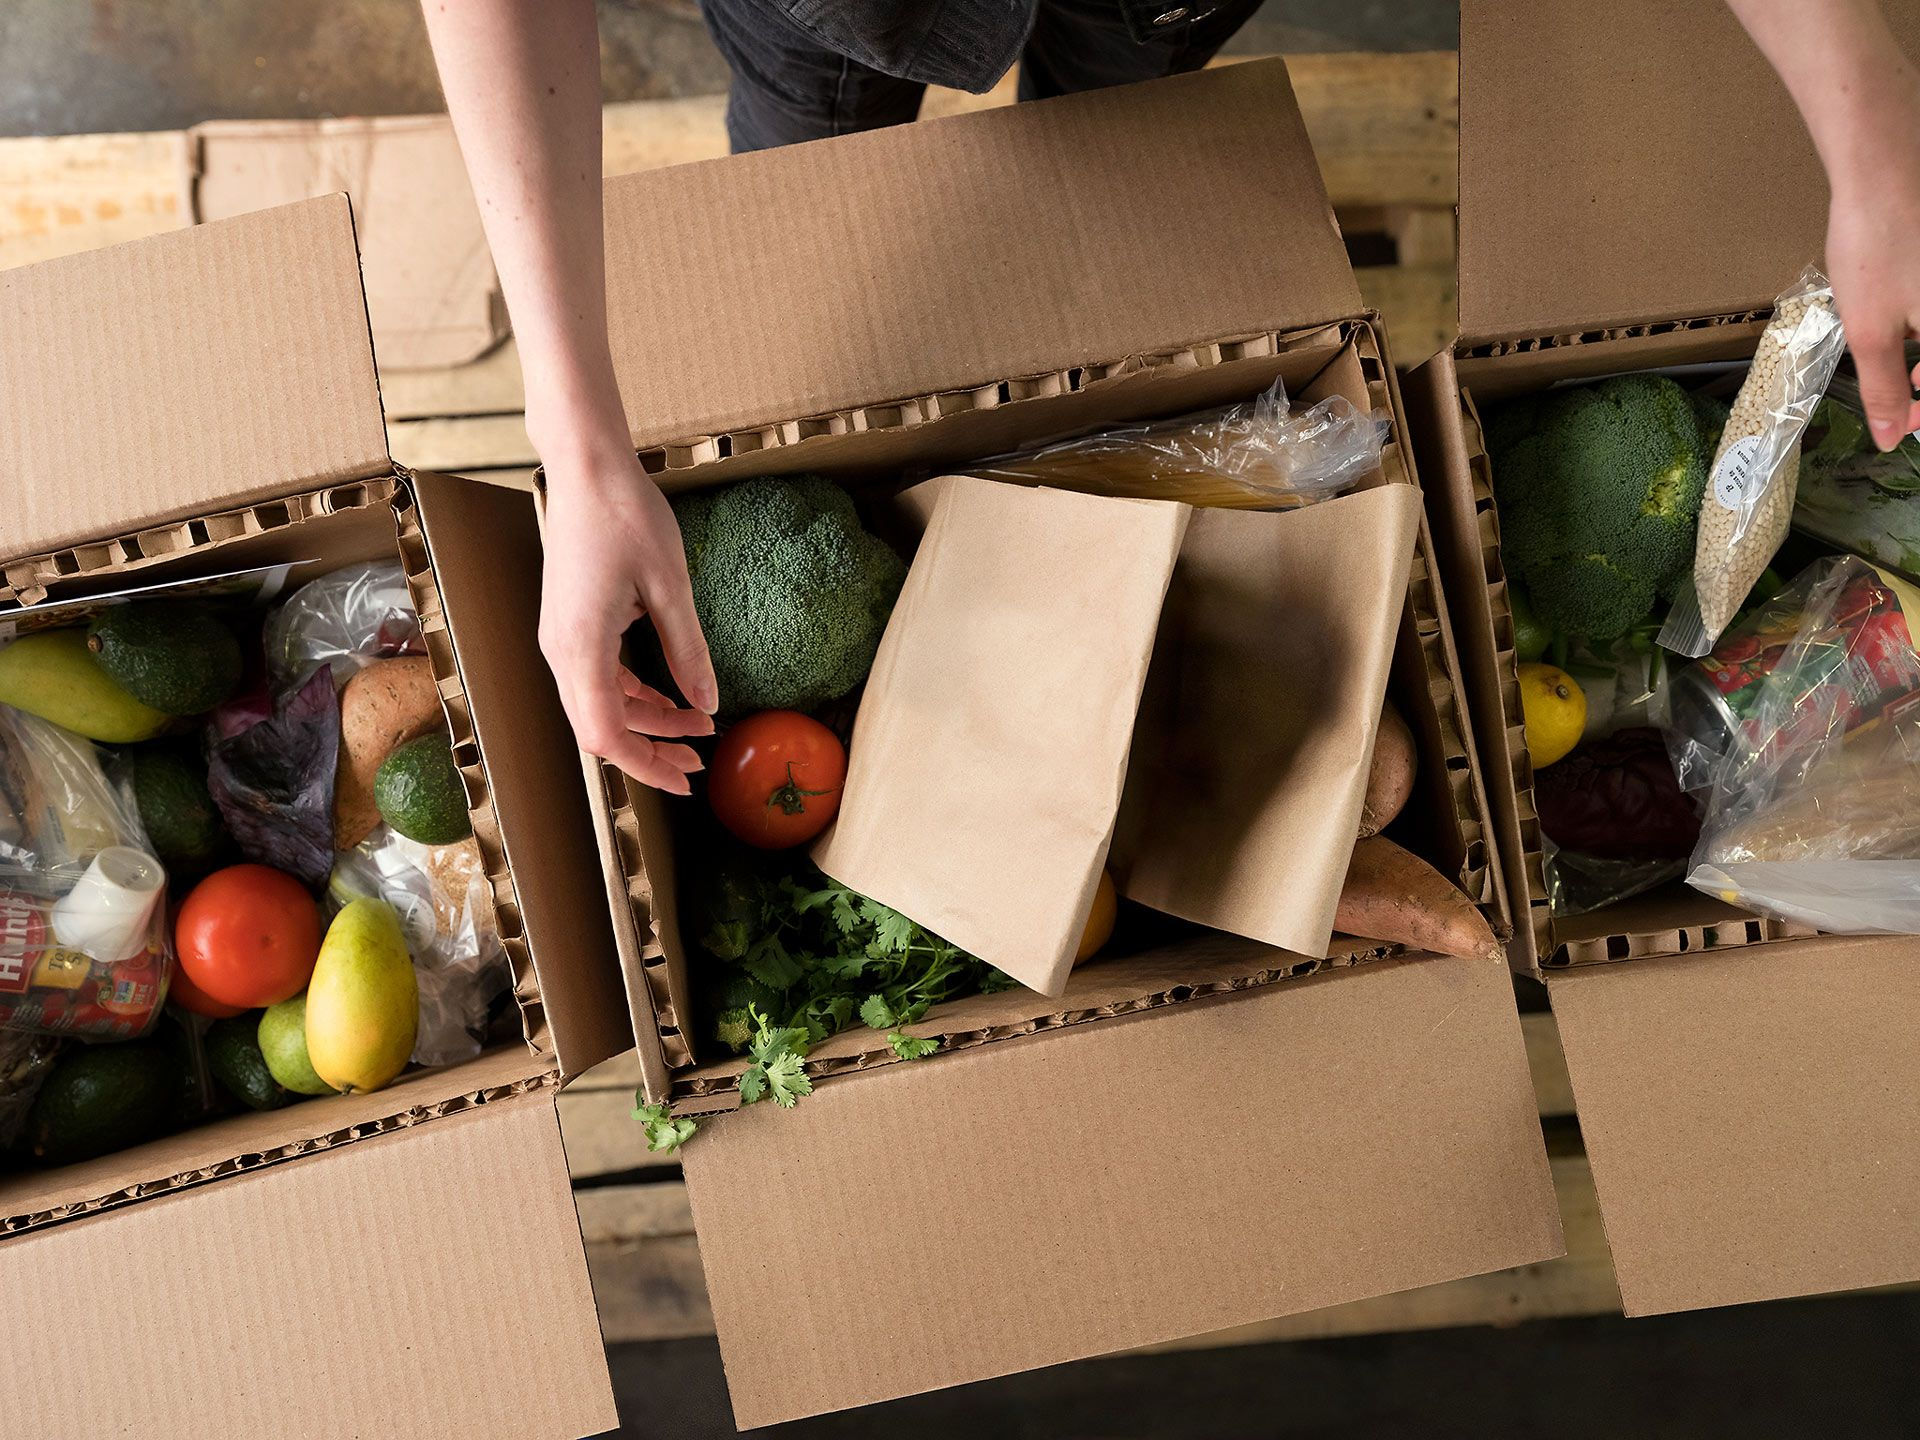 Birdview close up of three foods boxes being packed in warehouse.